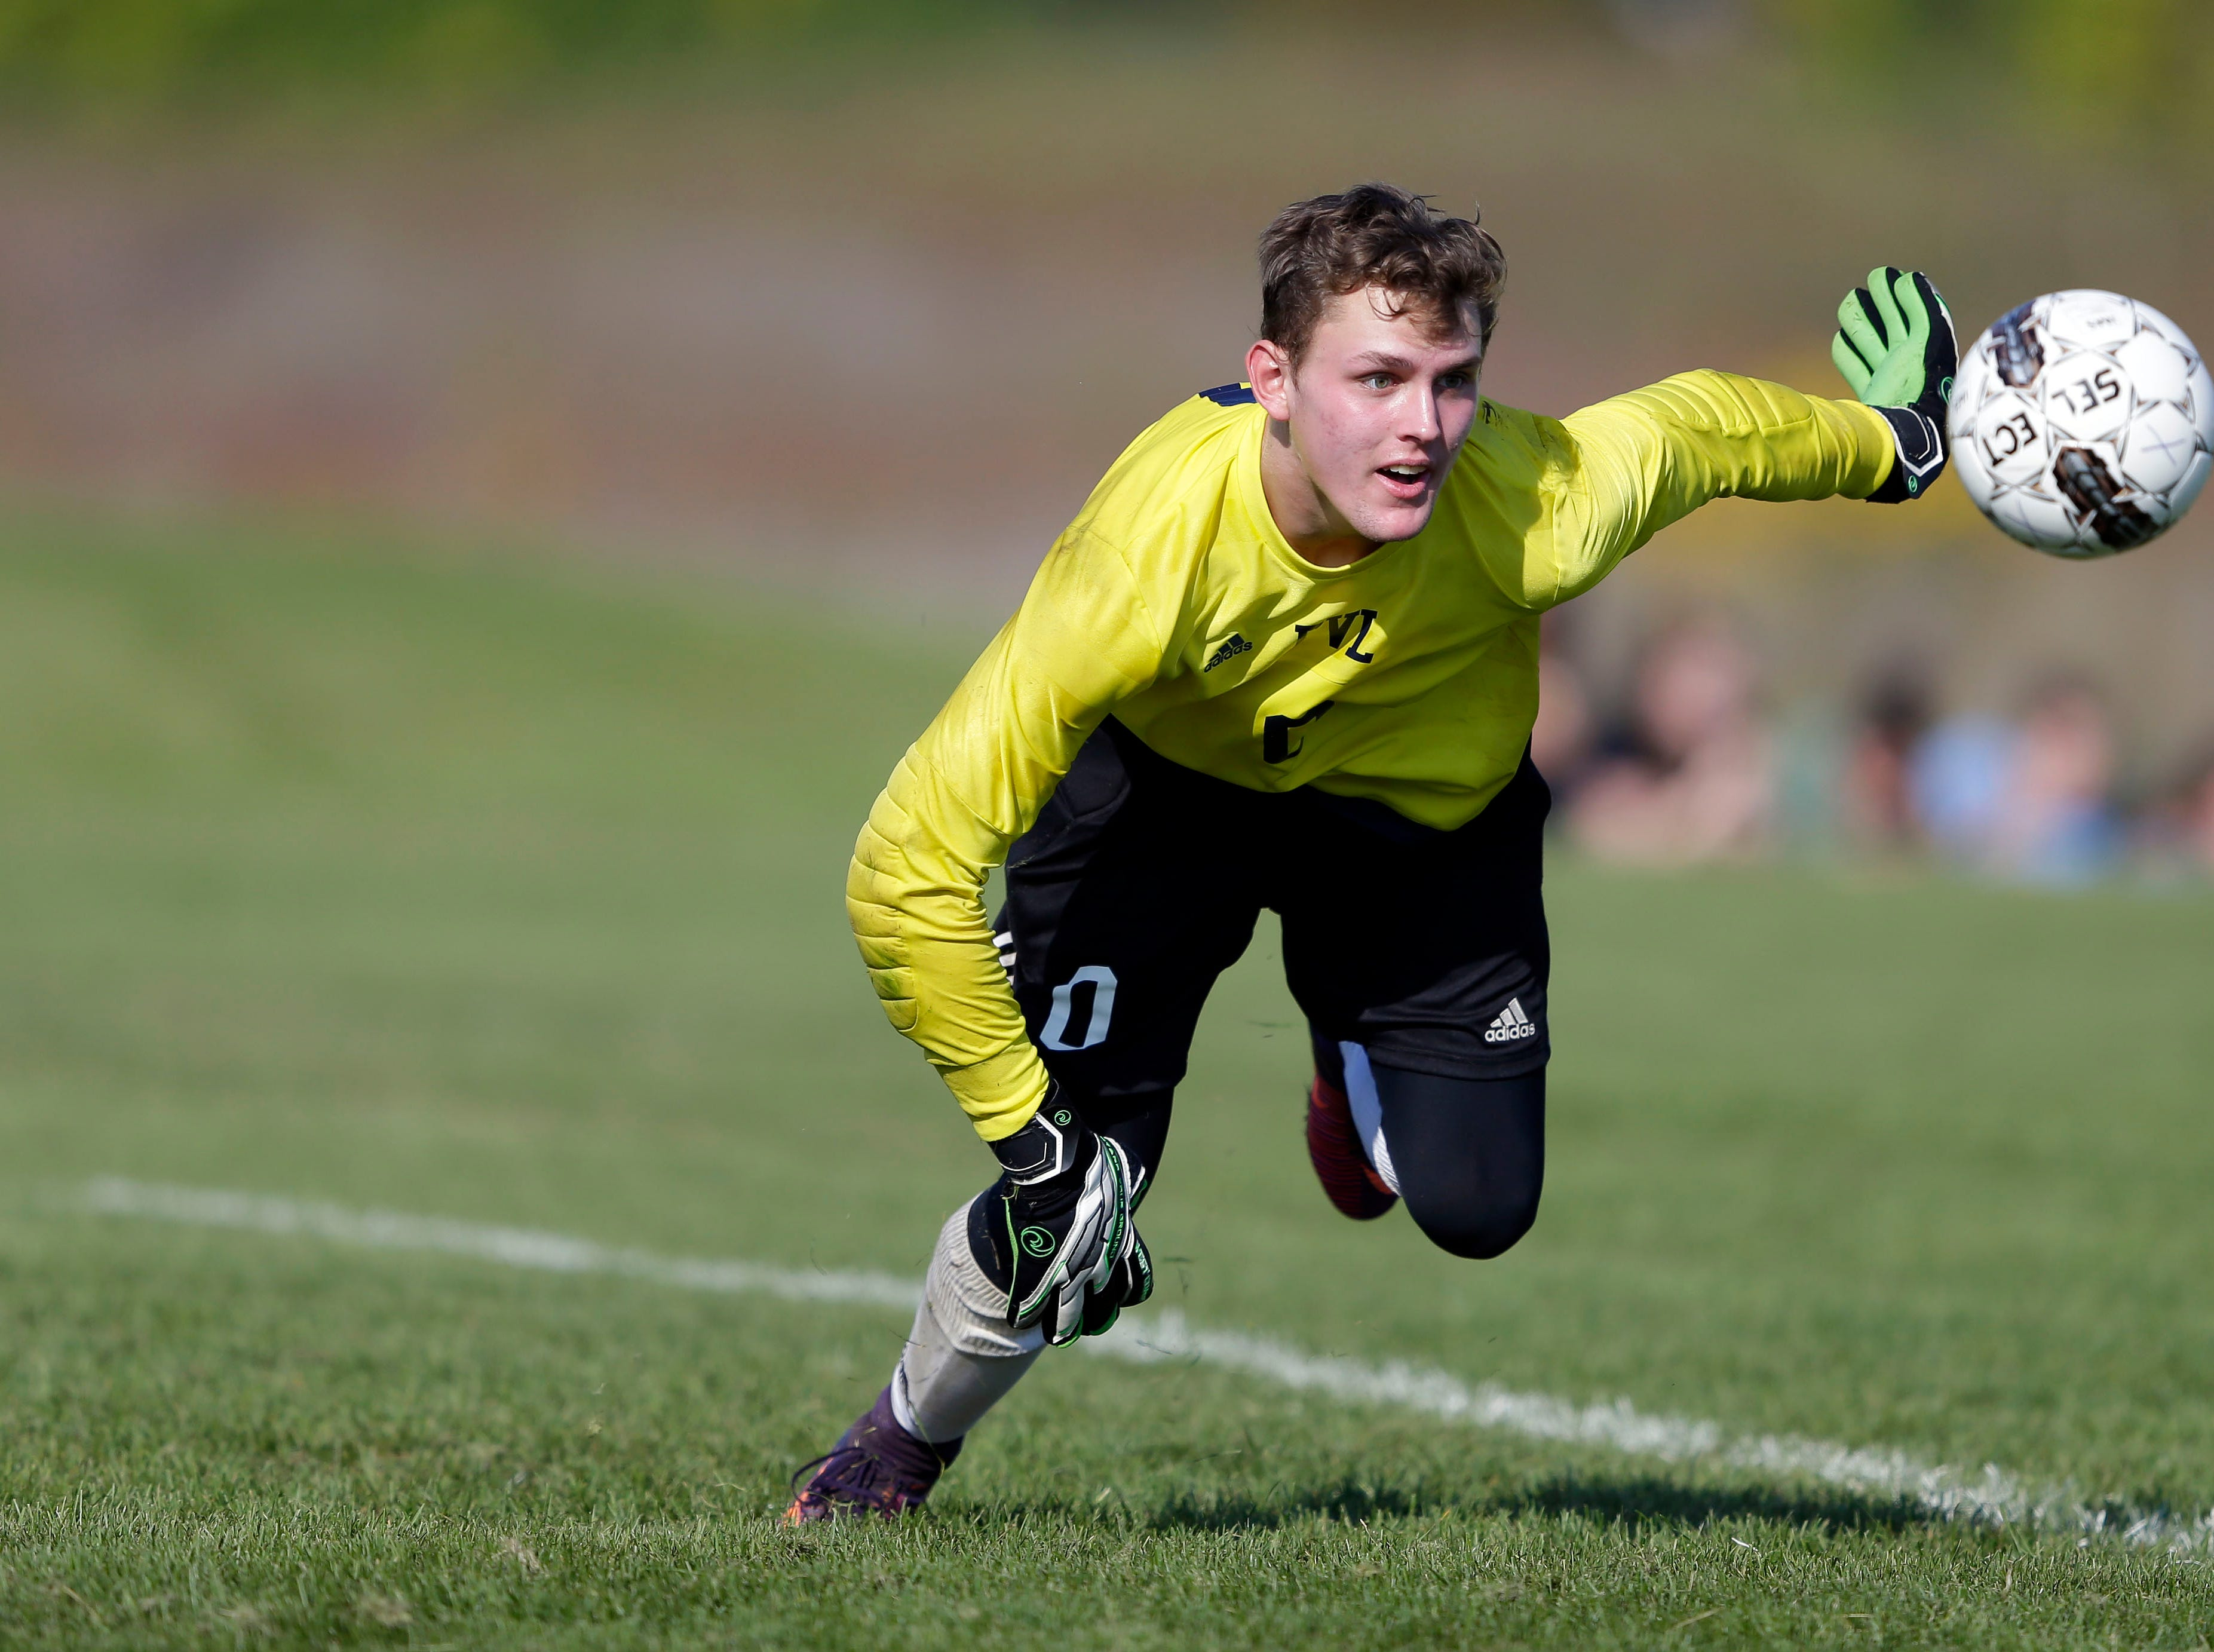 Steven Paulson goes for the ball as Fox Valley Lutheran and Xavier meet in the Xavier boys soccer tournament Saturday, September 15, 2018, at the Scheels USA Sports Complex in Appleton, Wis.Ron Page/USA TODAY NETWORK-Wisconsin